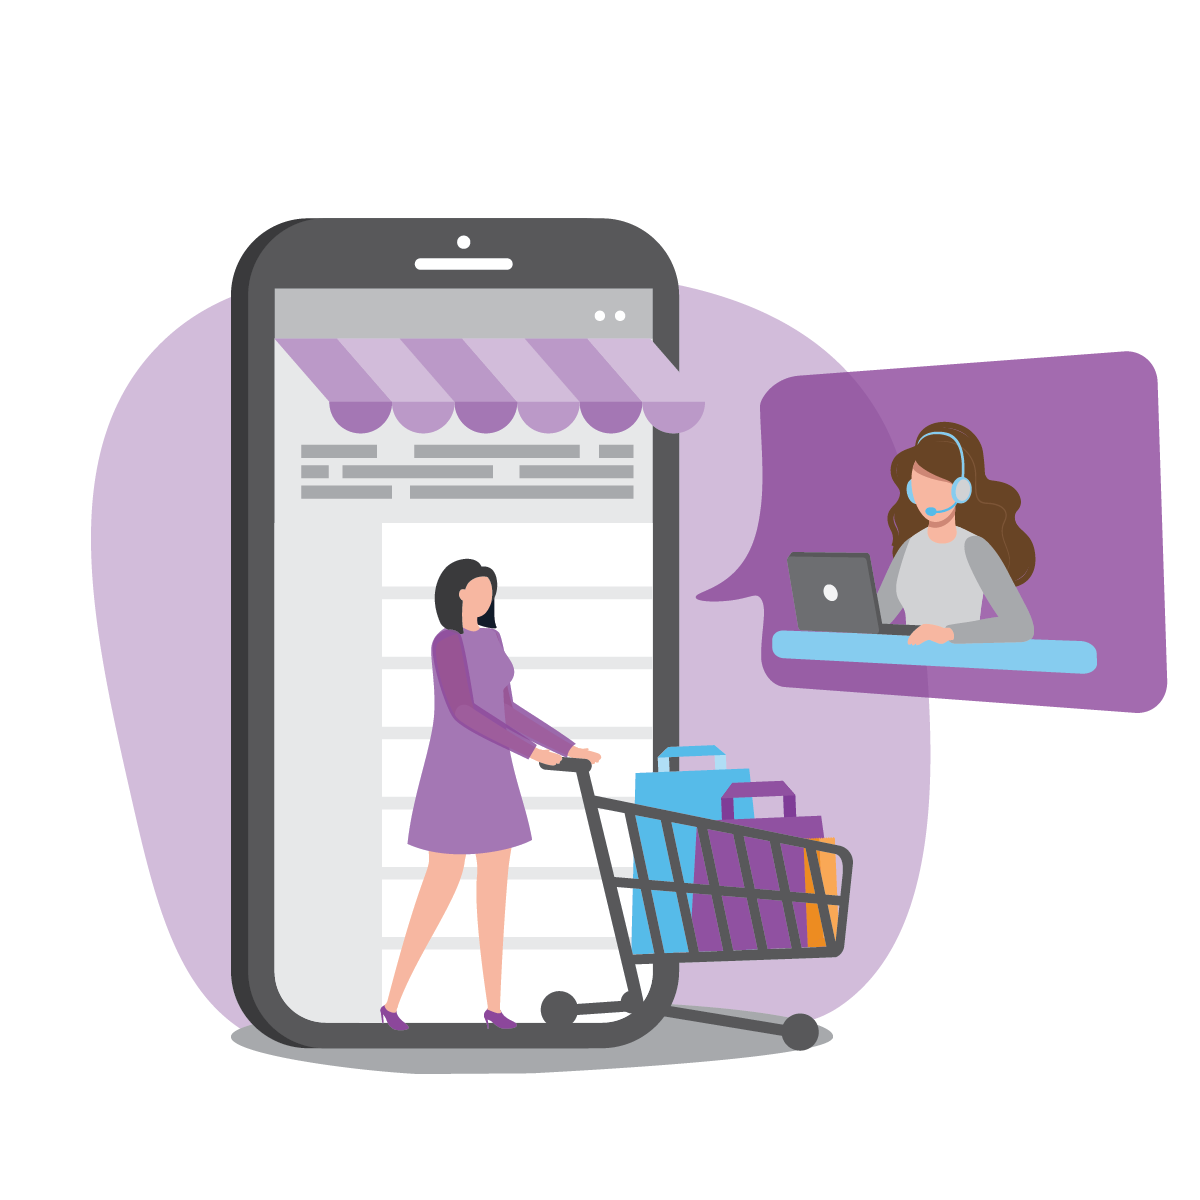 Sales Customer Service Support - Online Video Meetings, E-Commerce Real-Time Solutions